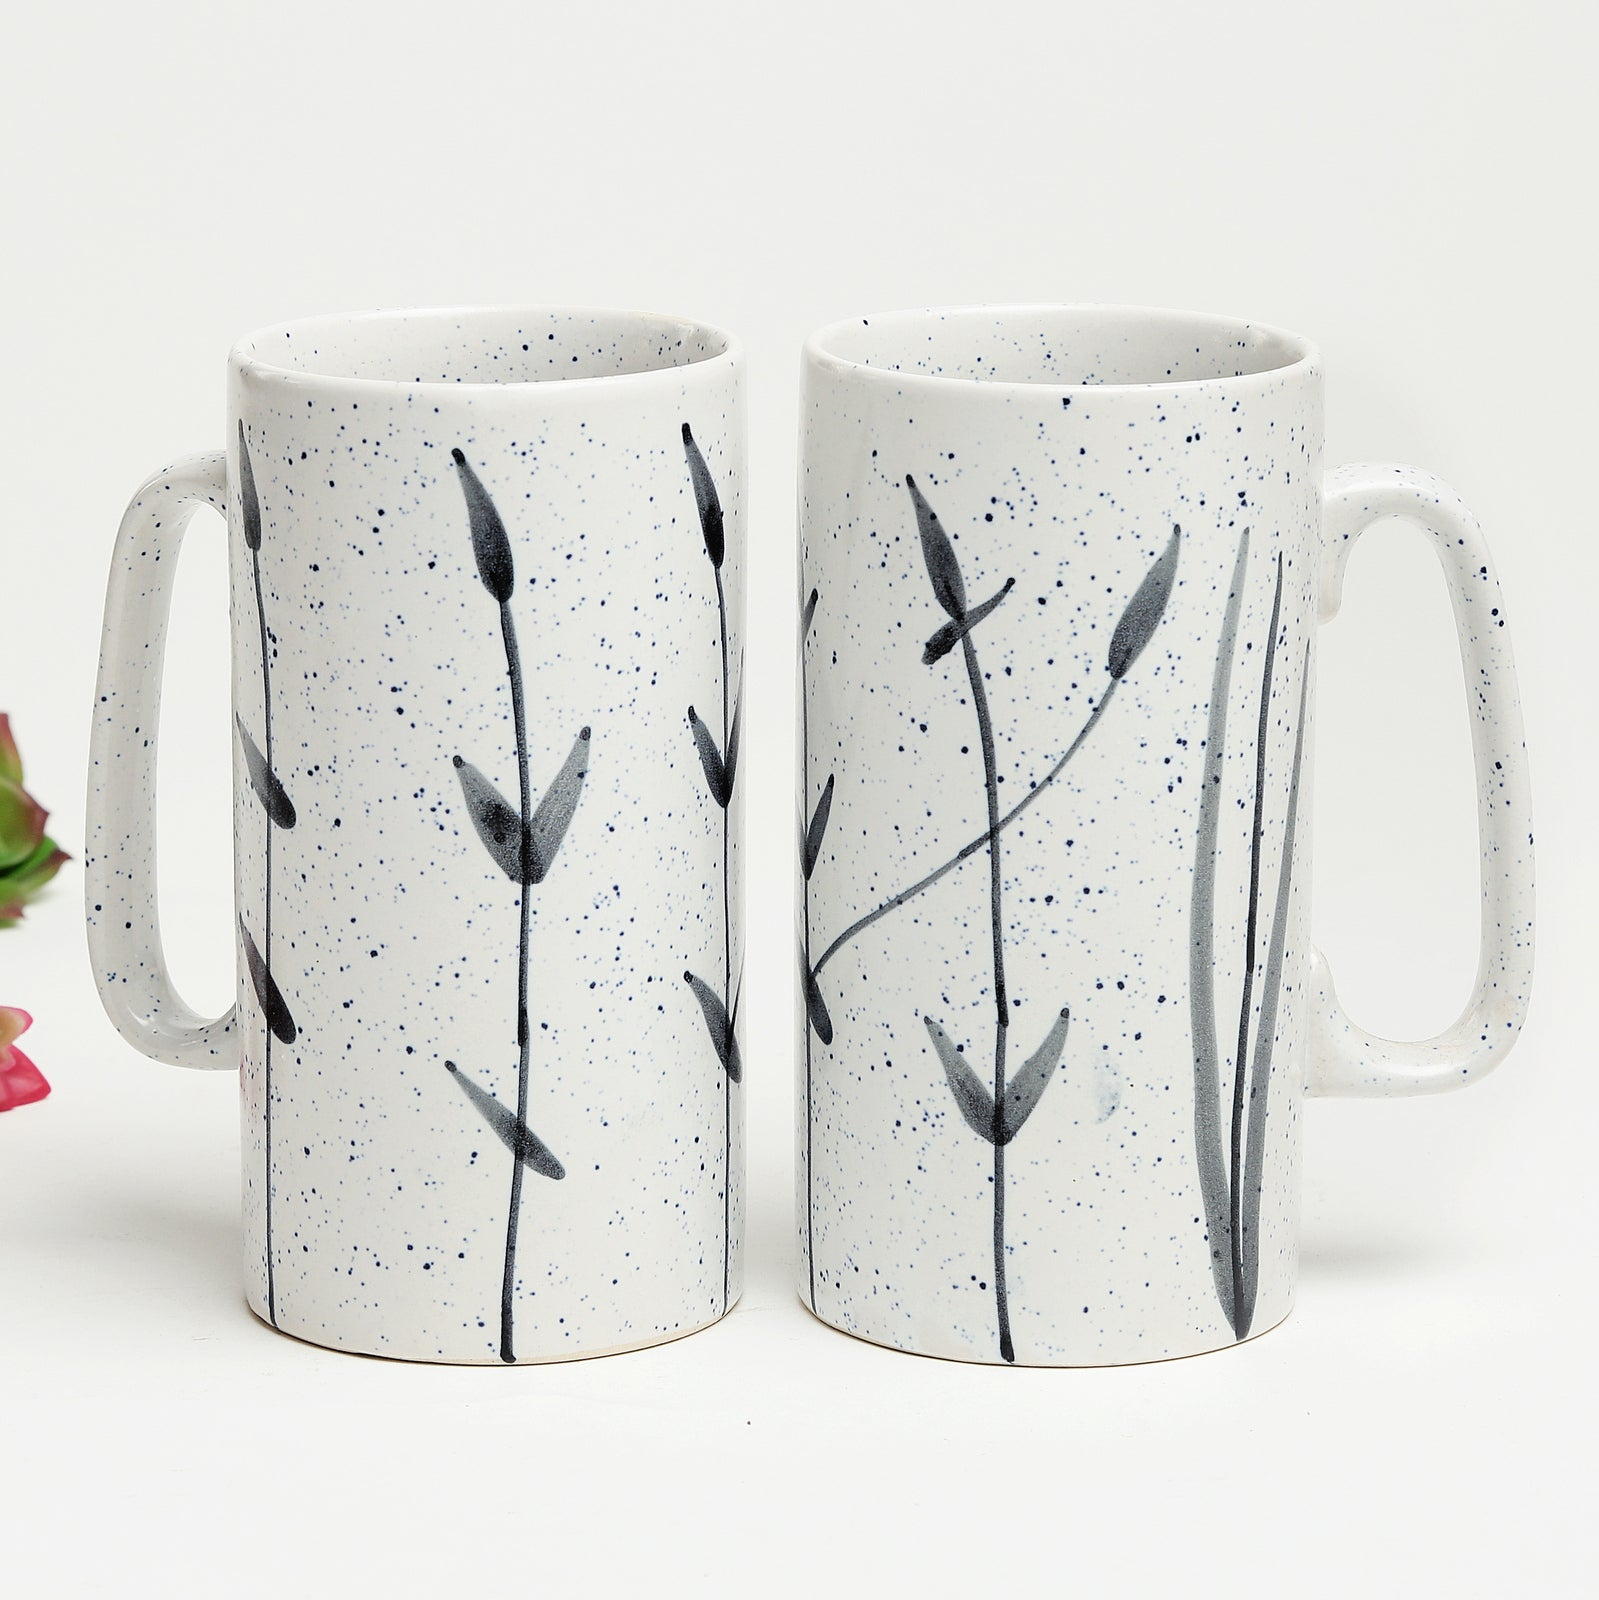 Black and White Tunnel Beer Mugs - set of 2